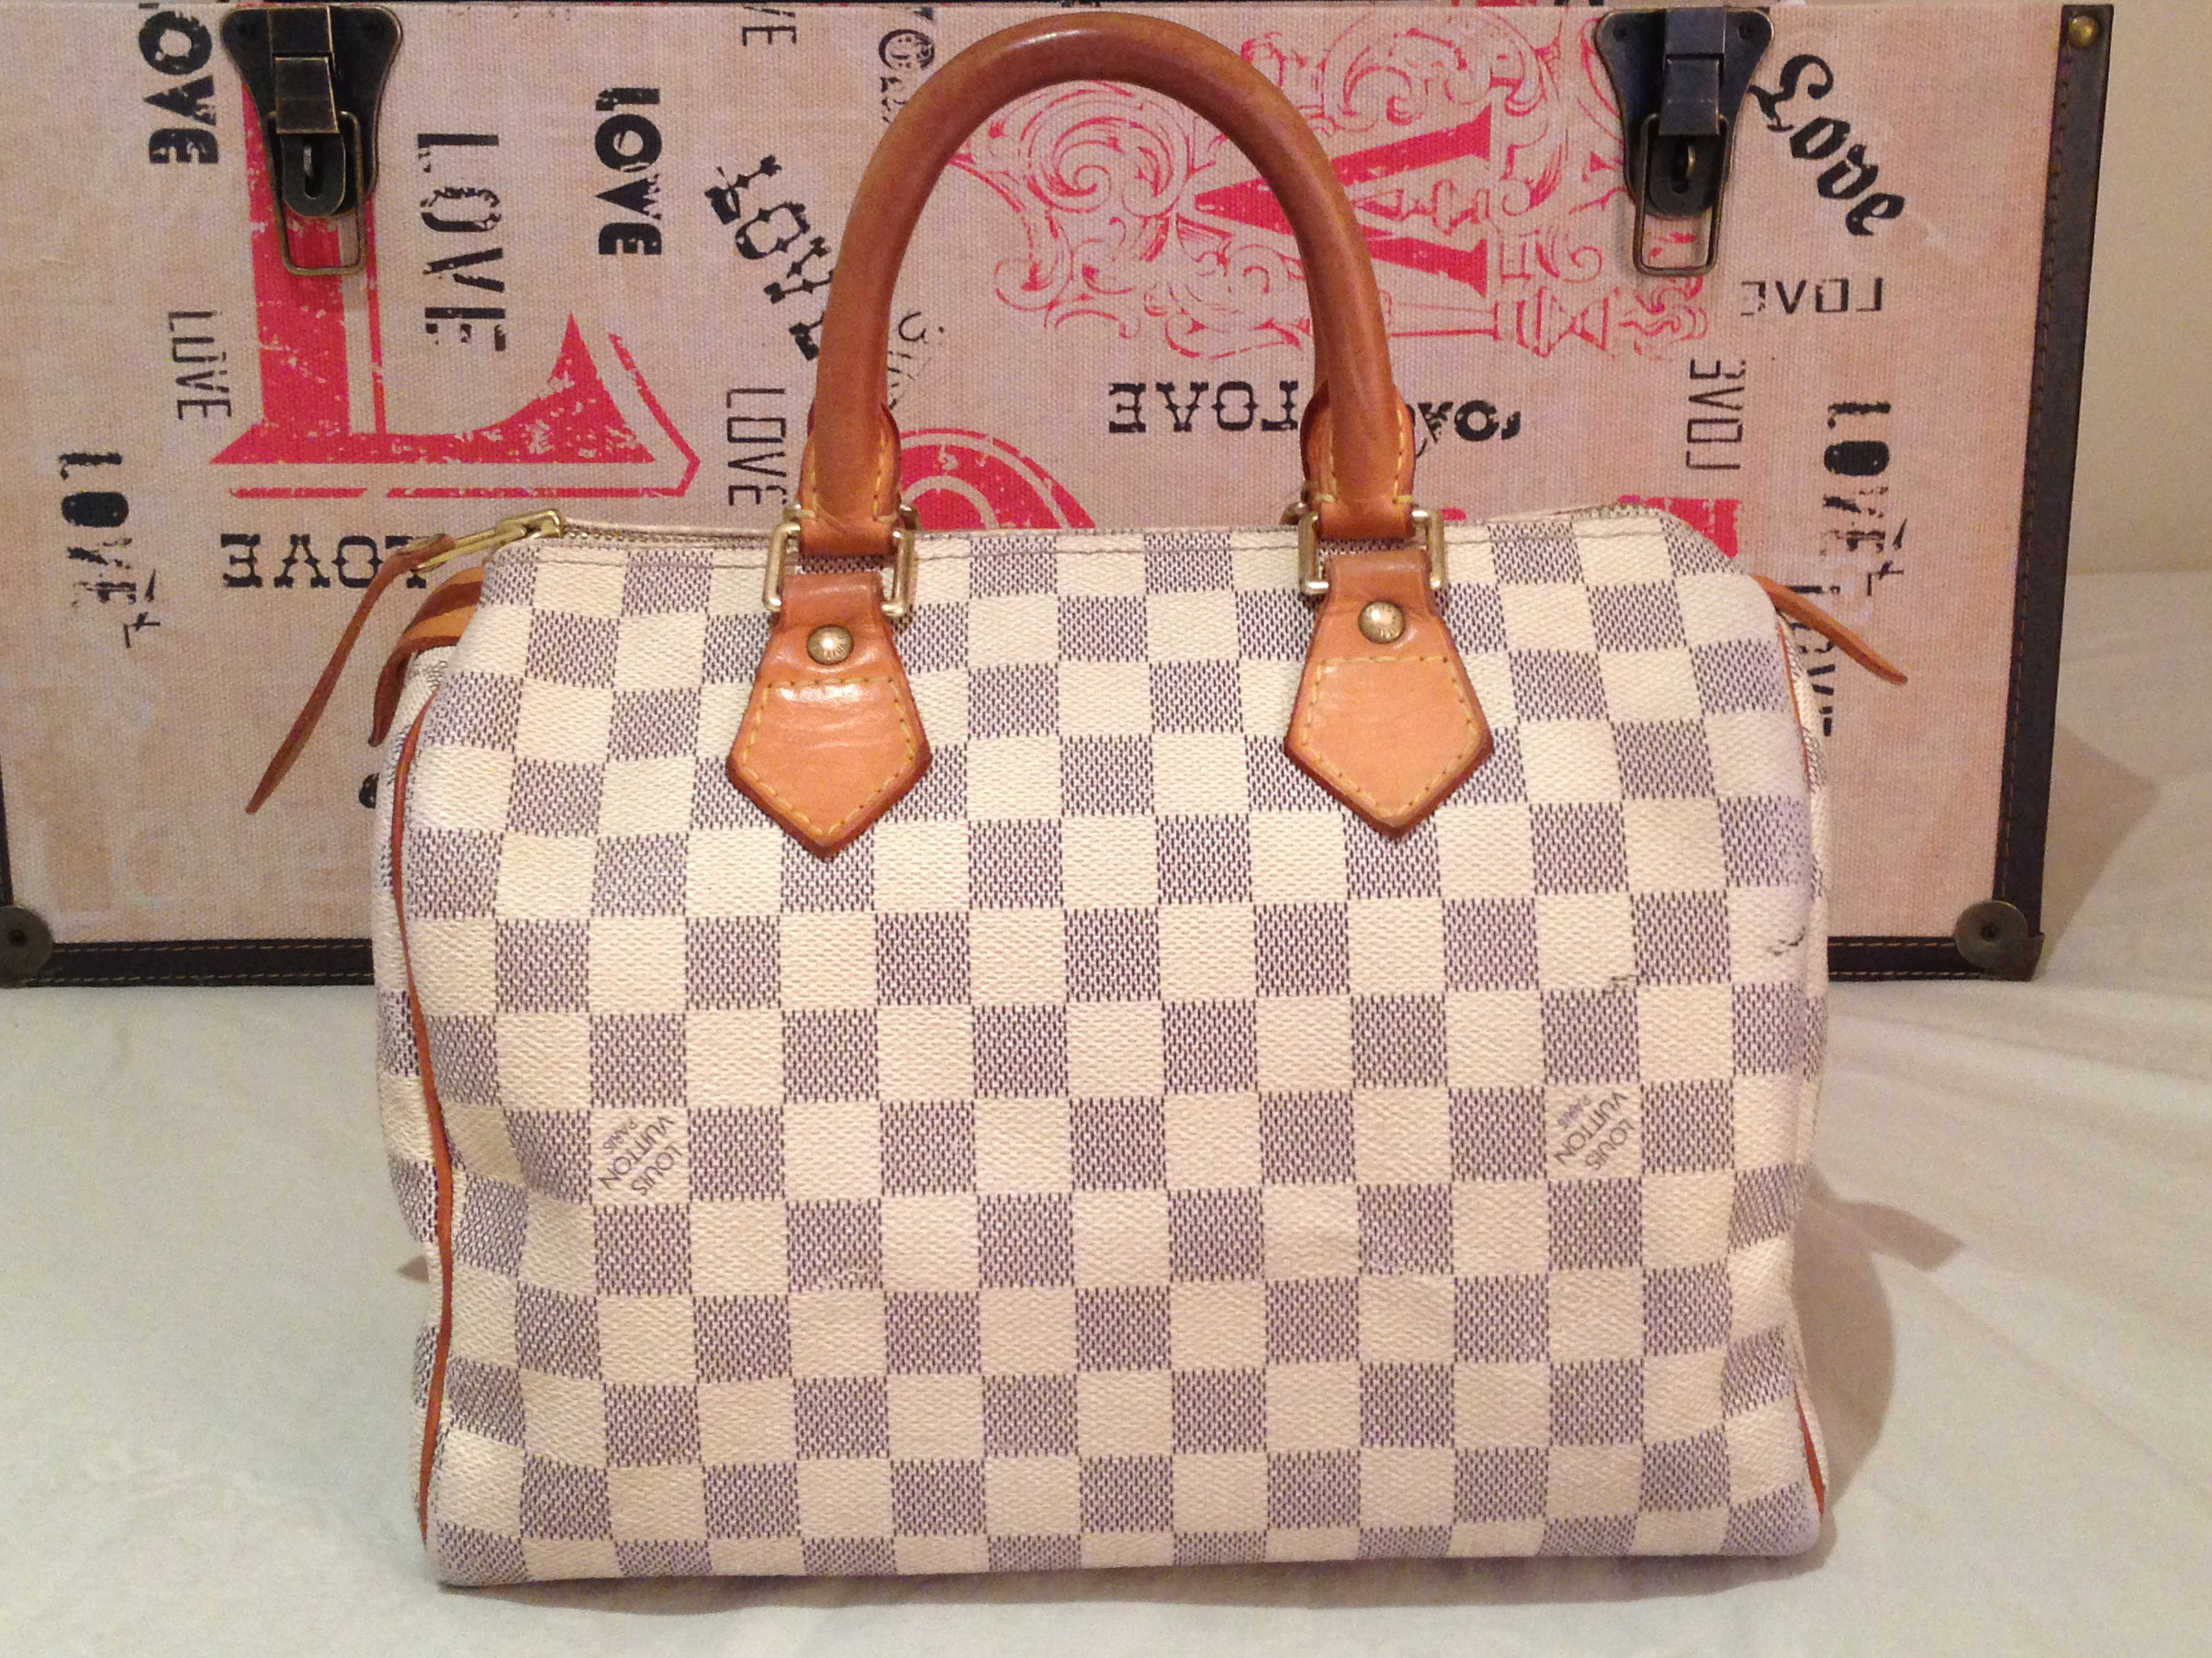 88ea46dbb223 FS000414-1 LV Speedy 25 Damier Azur. SOLD – Authentic LOUIS VUITTON Speedy  25 Damier Azur ...